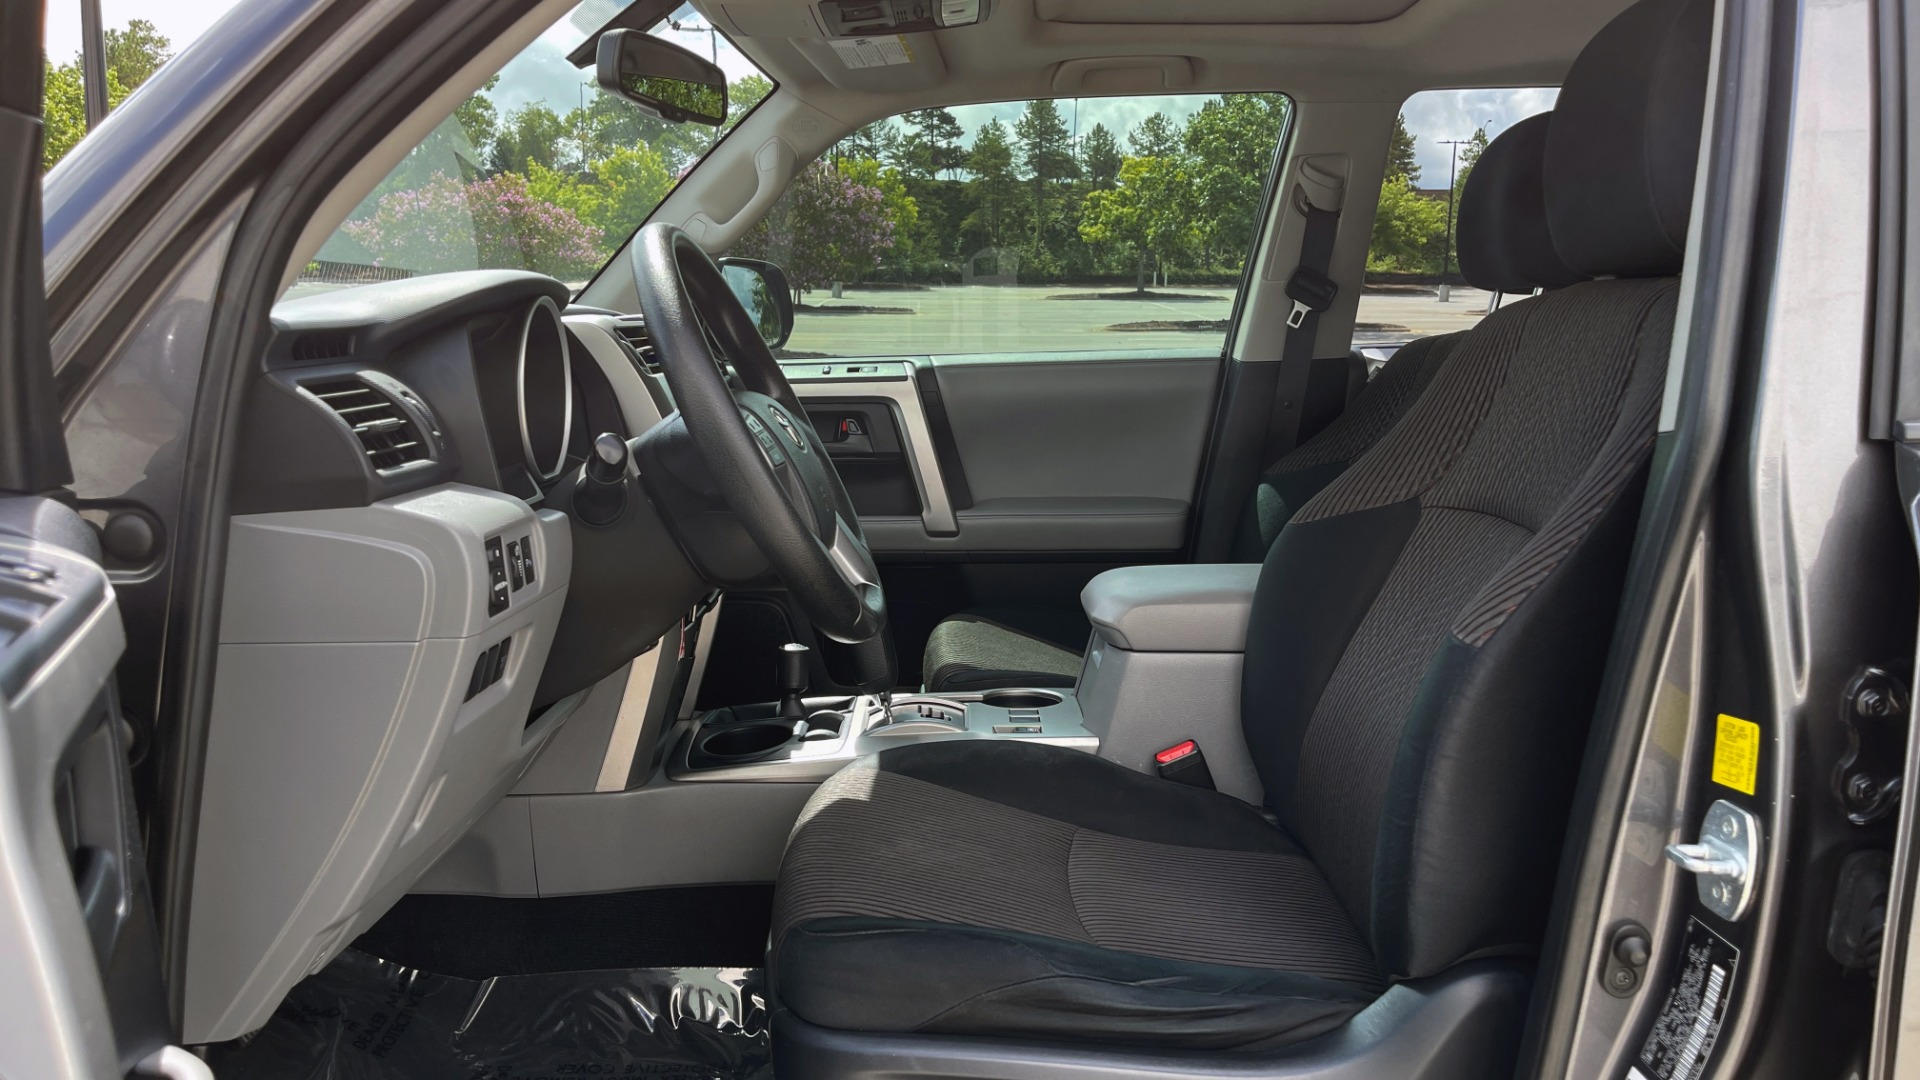 Used 2011 Toyota 4RUNNER SR5 4X4 V6 / 5-SPD AUTO / SUNROOF / POWER FRONT SEATS for sale $19,999 at Formula Imports in Charlotte NC 28227 27